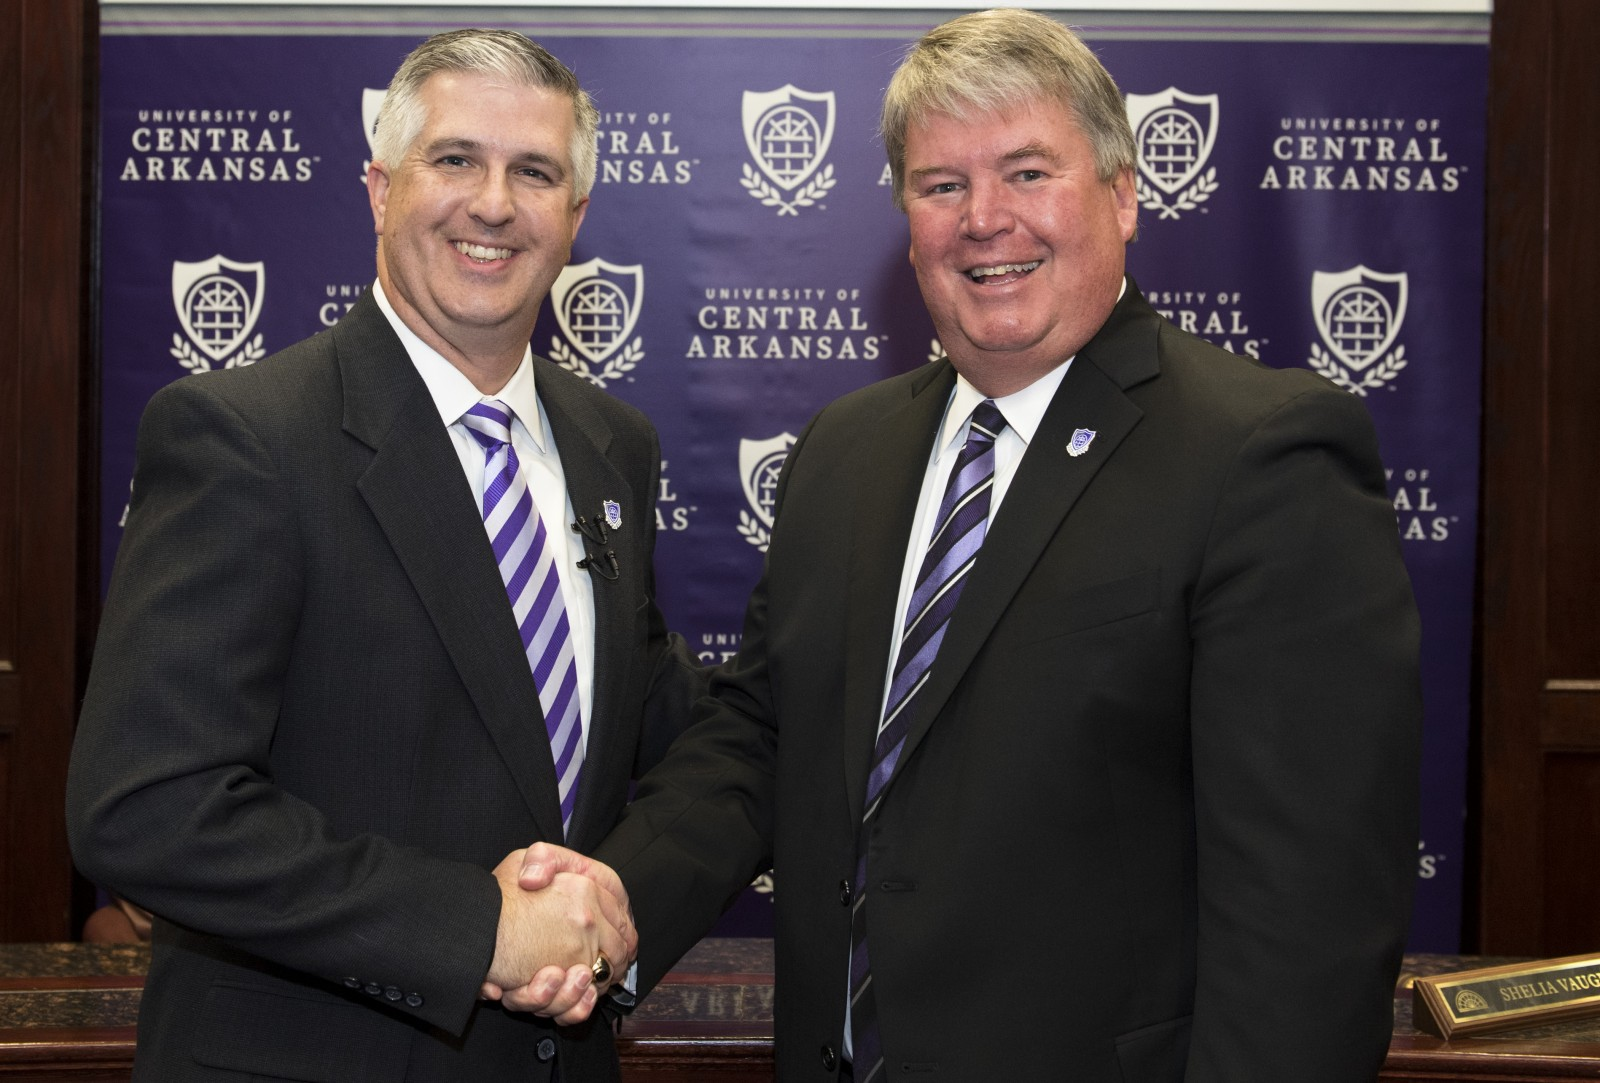 Newly-selected University of Central Arkansas President Houston D. Davis welcomed by outgoing President Tom Courtway